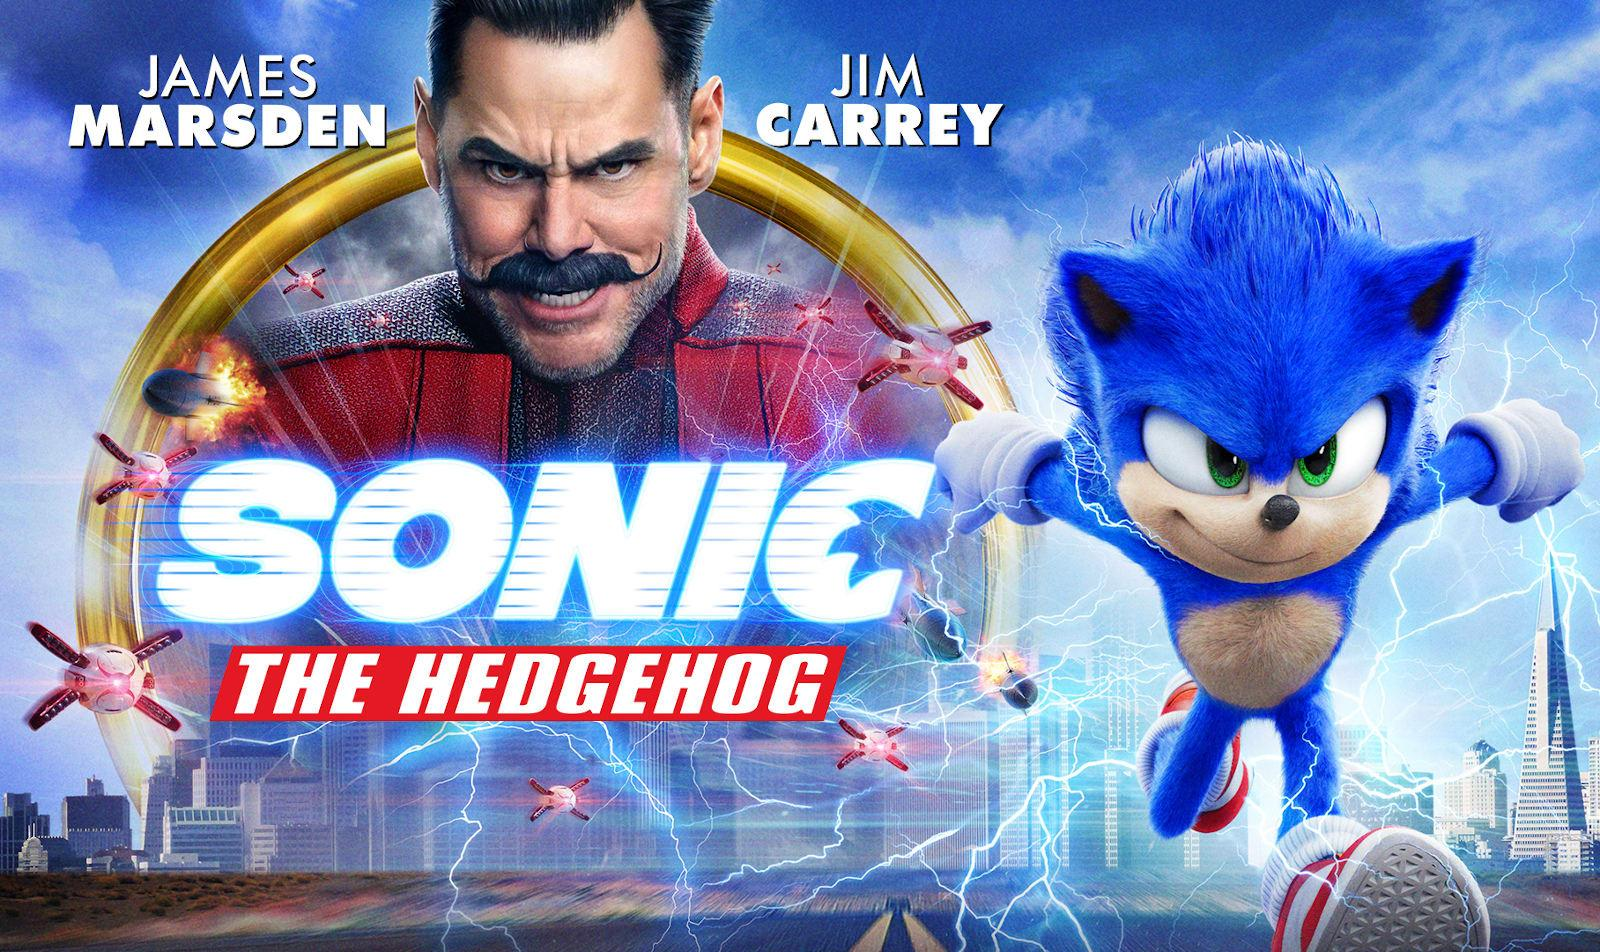 Sonic The Hedgehog Movie Gets An Early Digital Release On March 31st